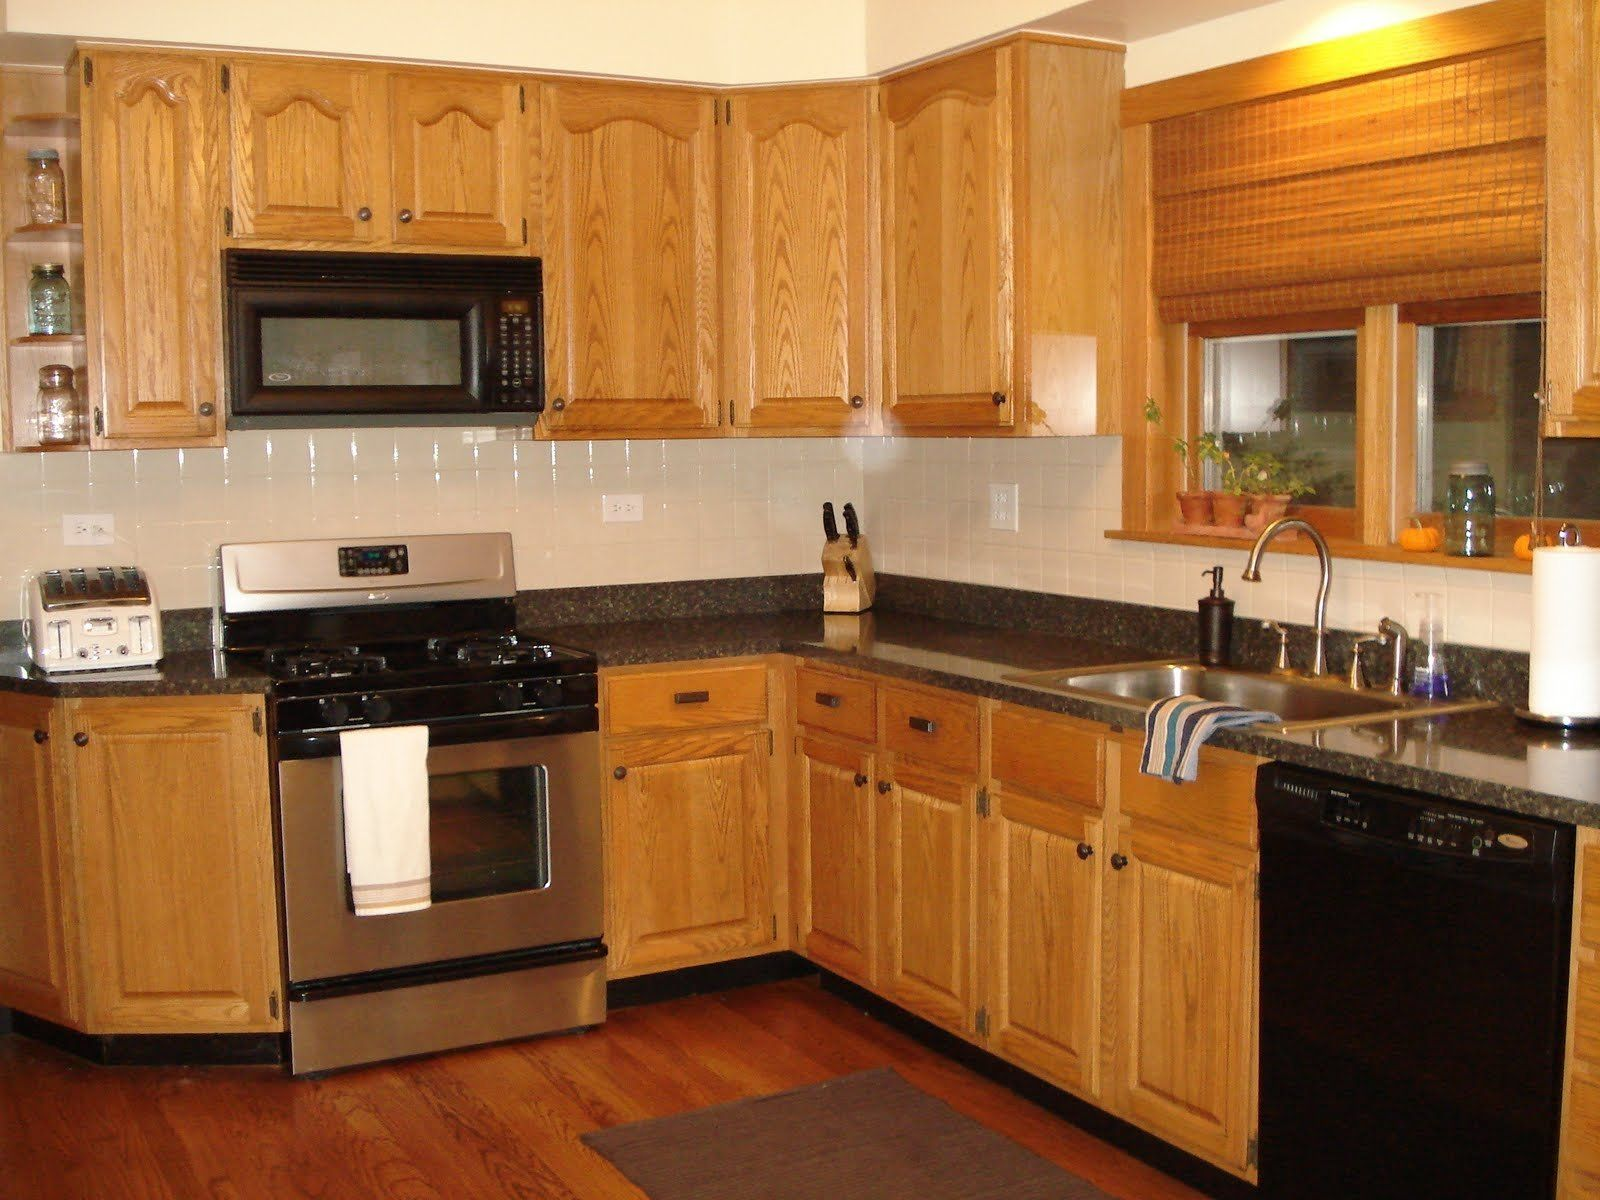 Oak Cabinet Kitchen Backsplash Pictures With Oak Cabinets And Uba Tuba Granite Re